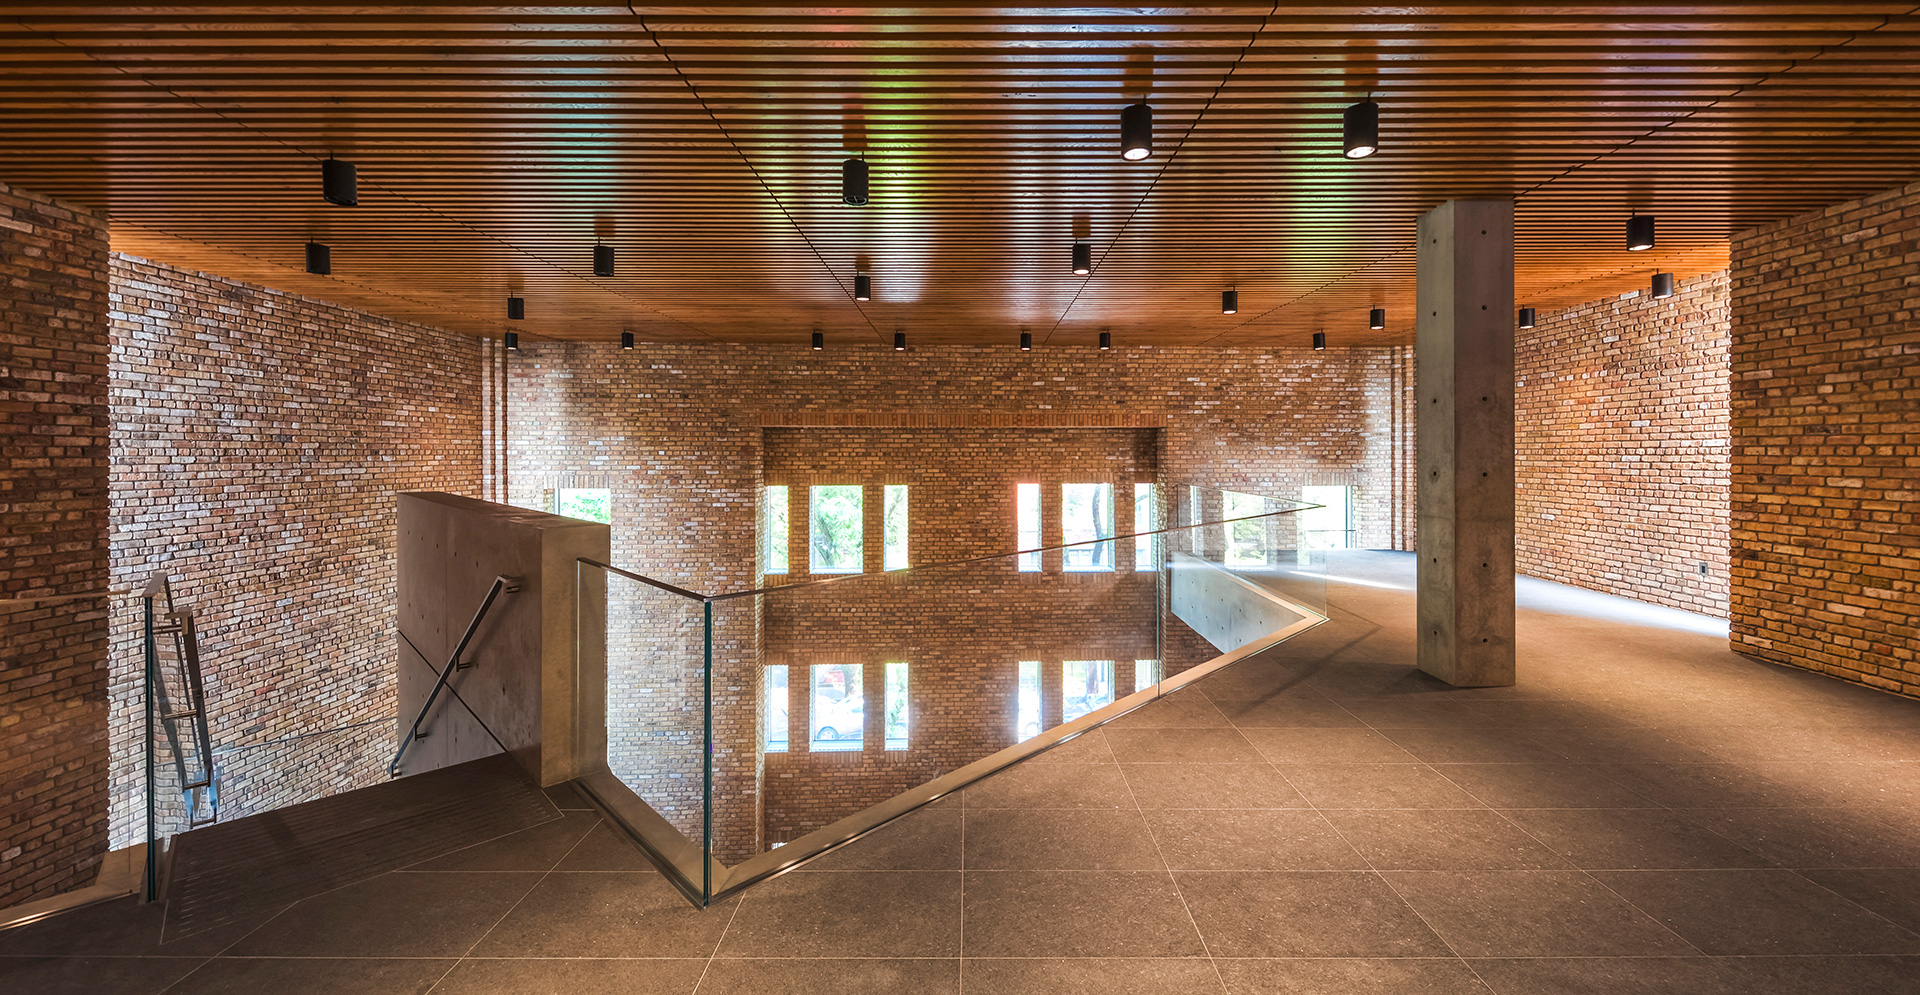 The new interiors of the building| Wrightwood 659| Tadao Ando| STIR